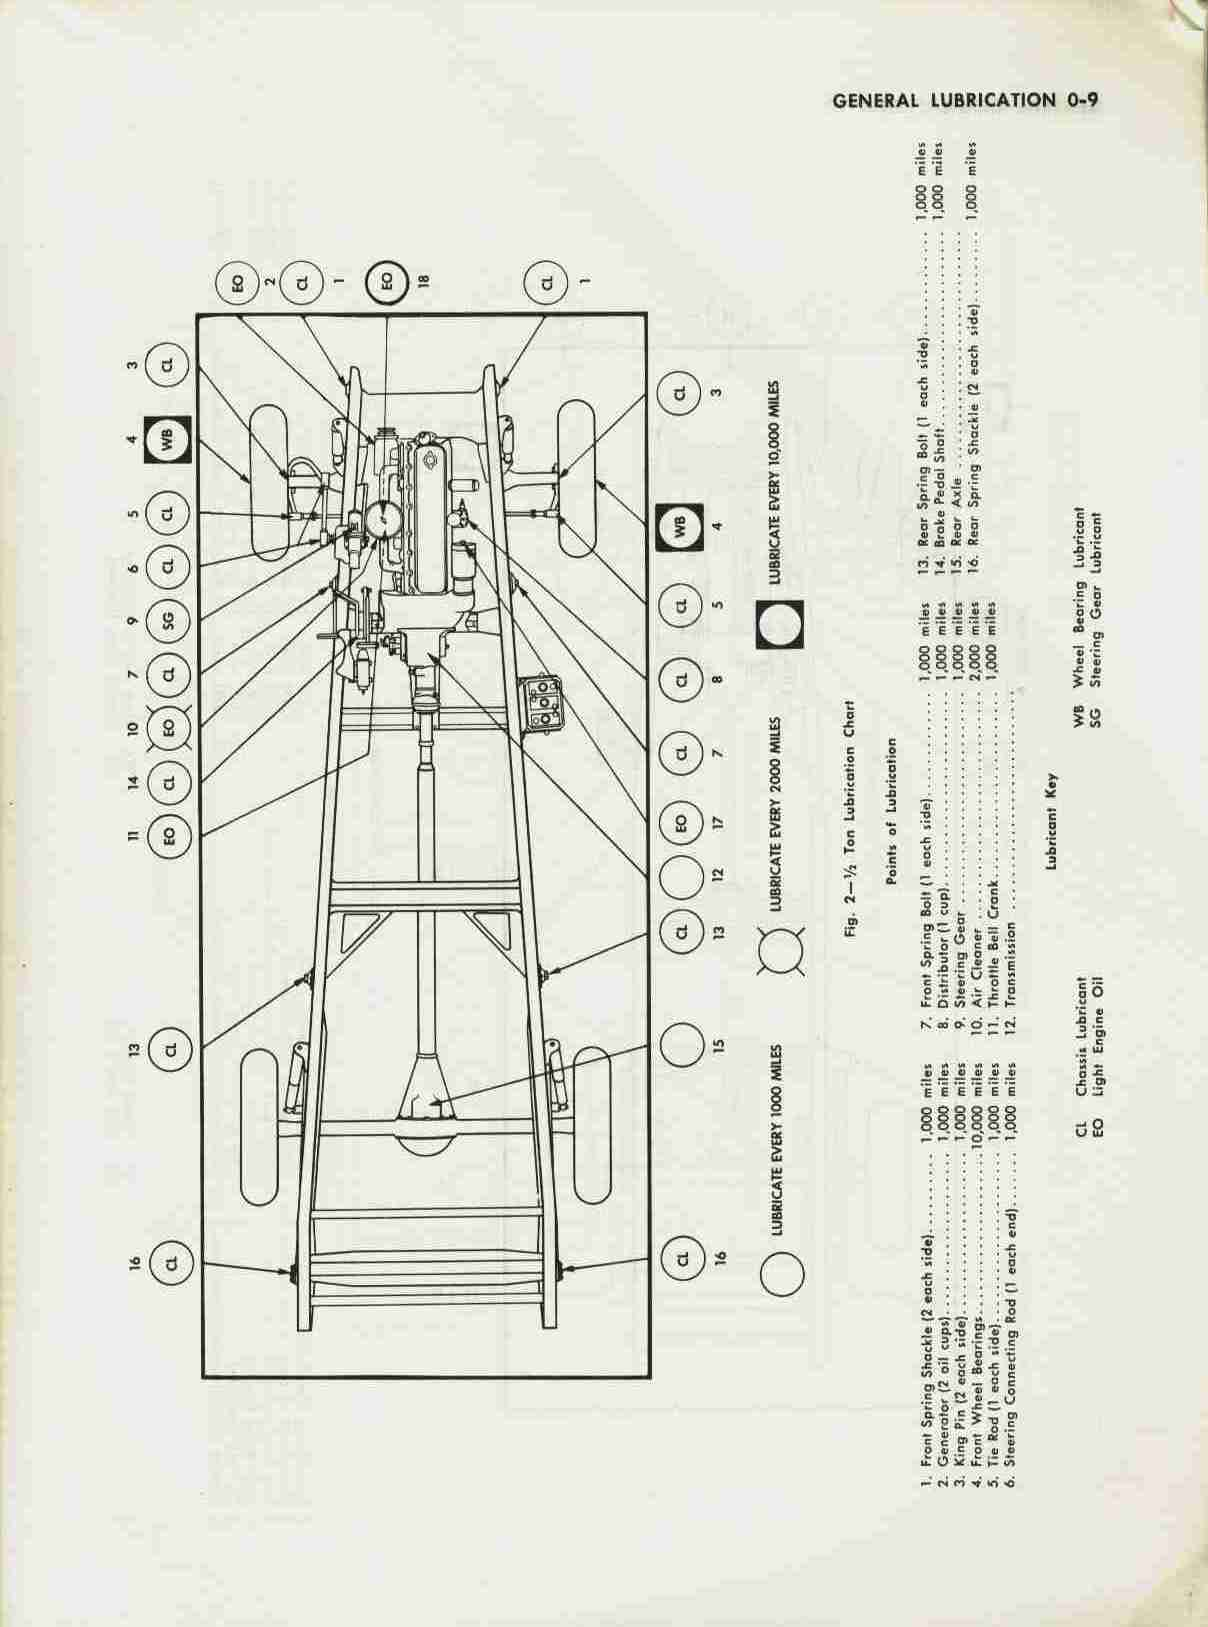 Chassis Lubrication Charts For Ad